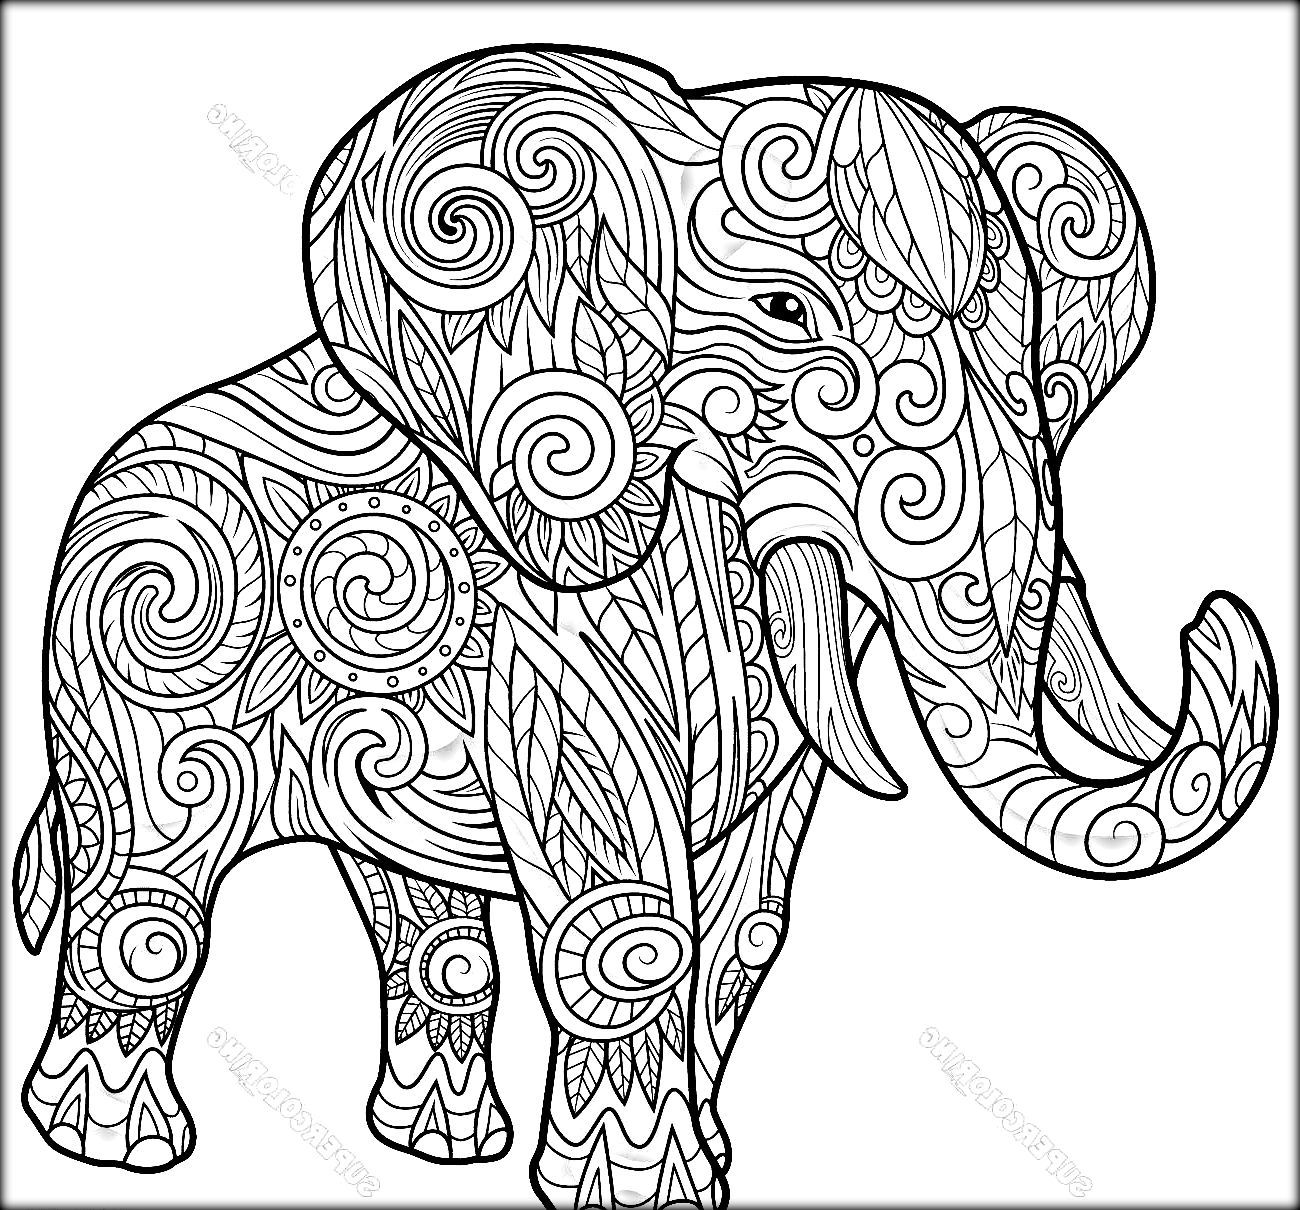 Elephant Coloring Pages At Getdrawings